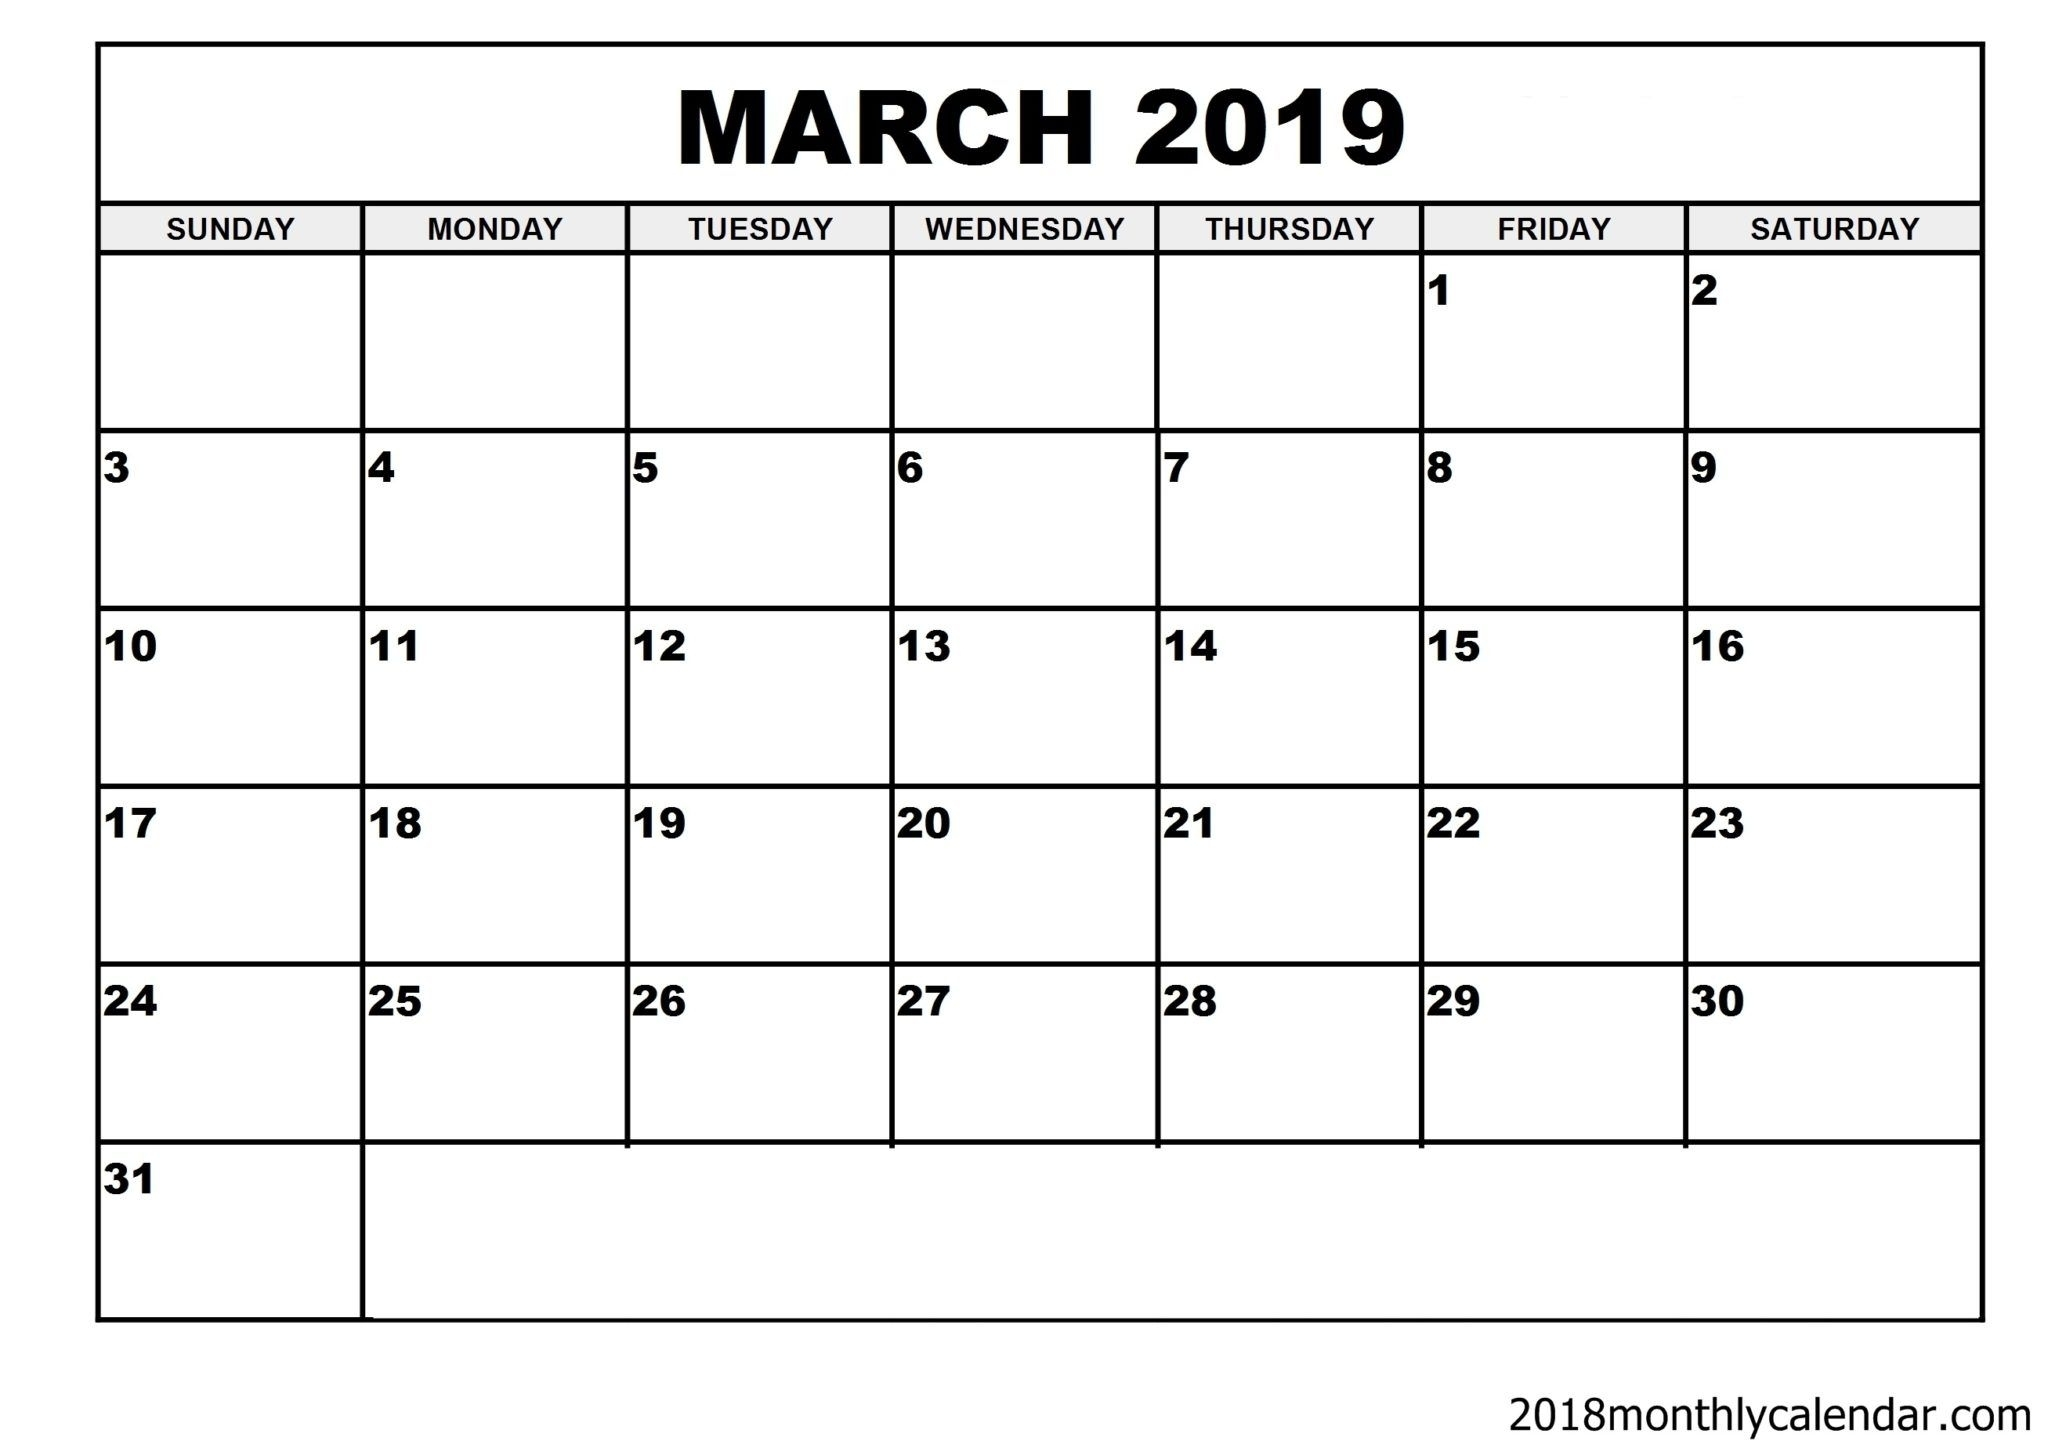 Download March 2019 Calendar – Blank Template - Editable Calendar with Empty Monthly Calendar Print Out